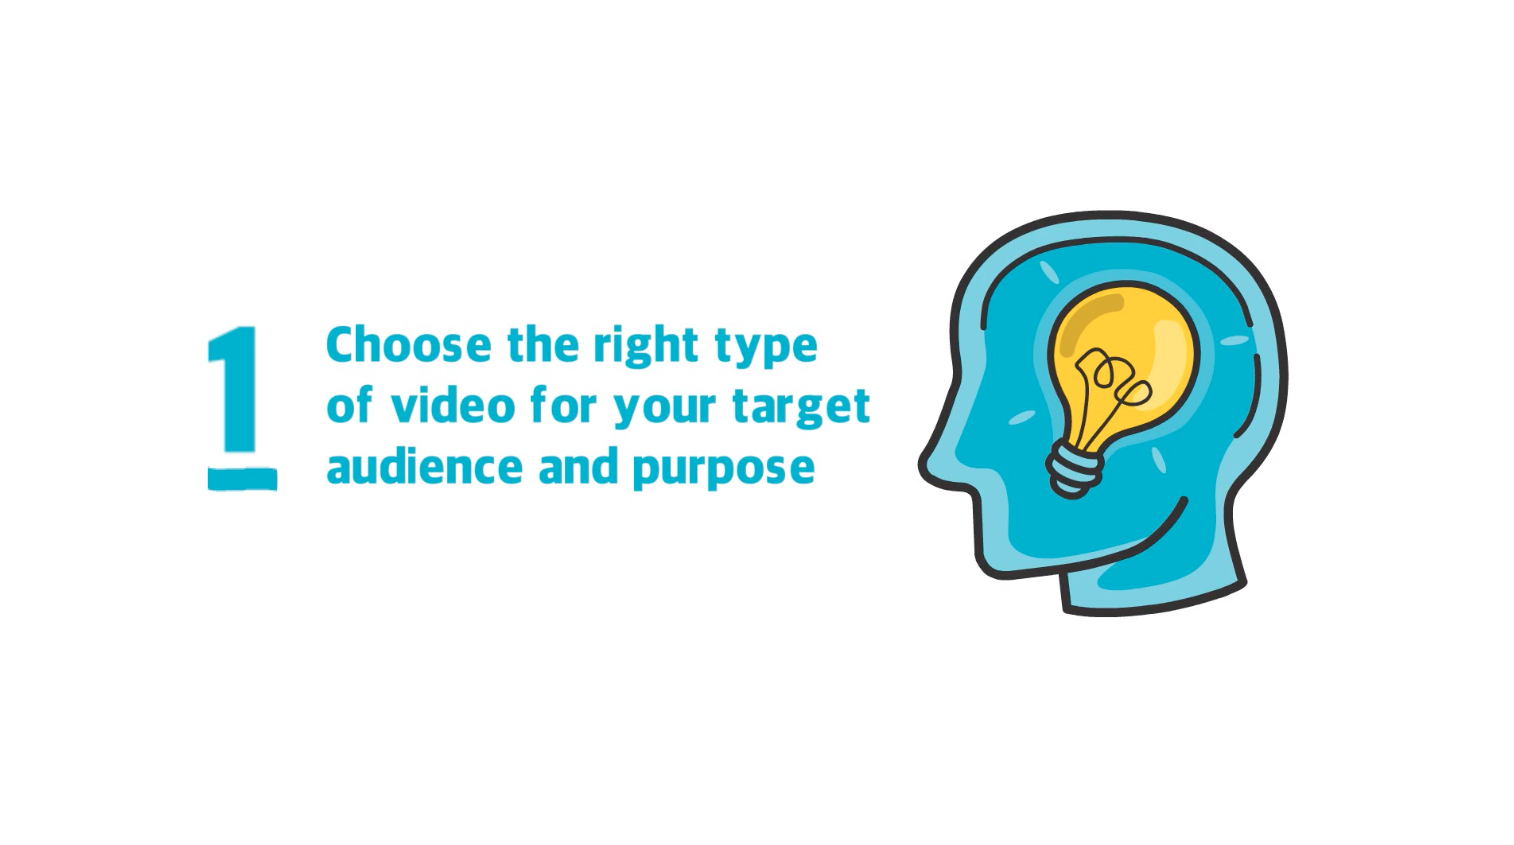 Choose the right type of video for your target audience and purpose